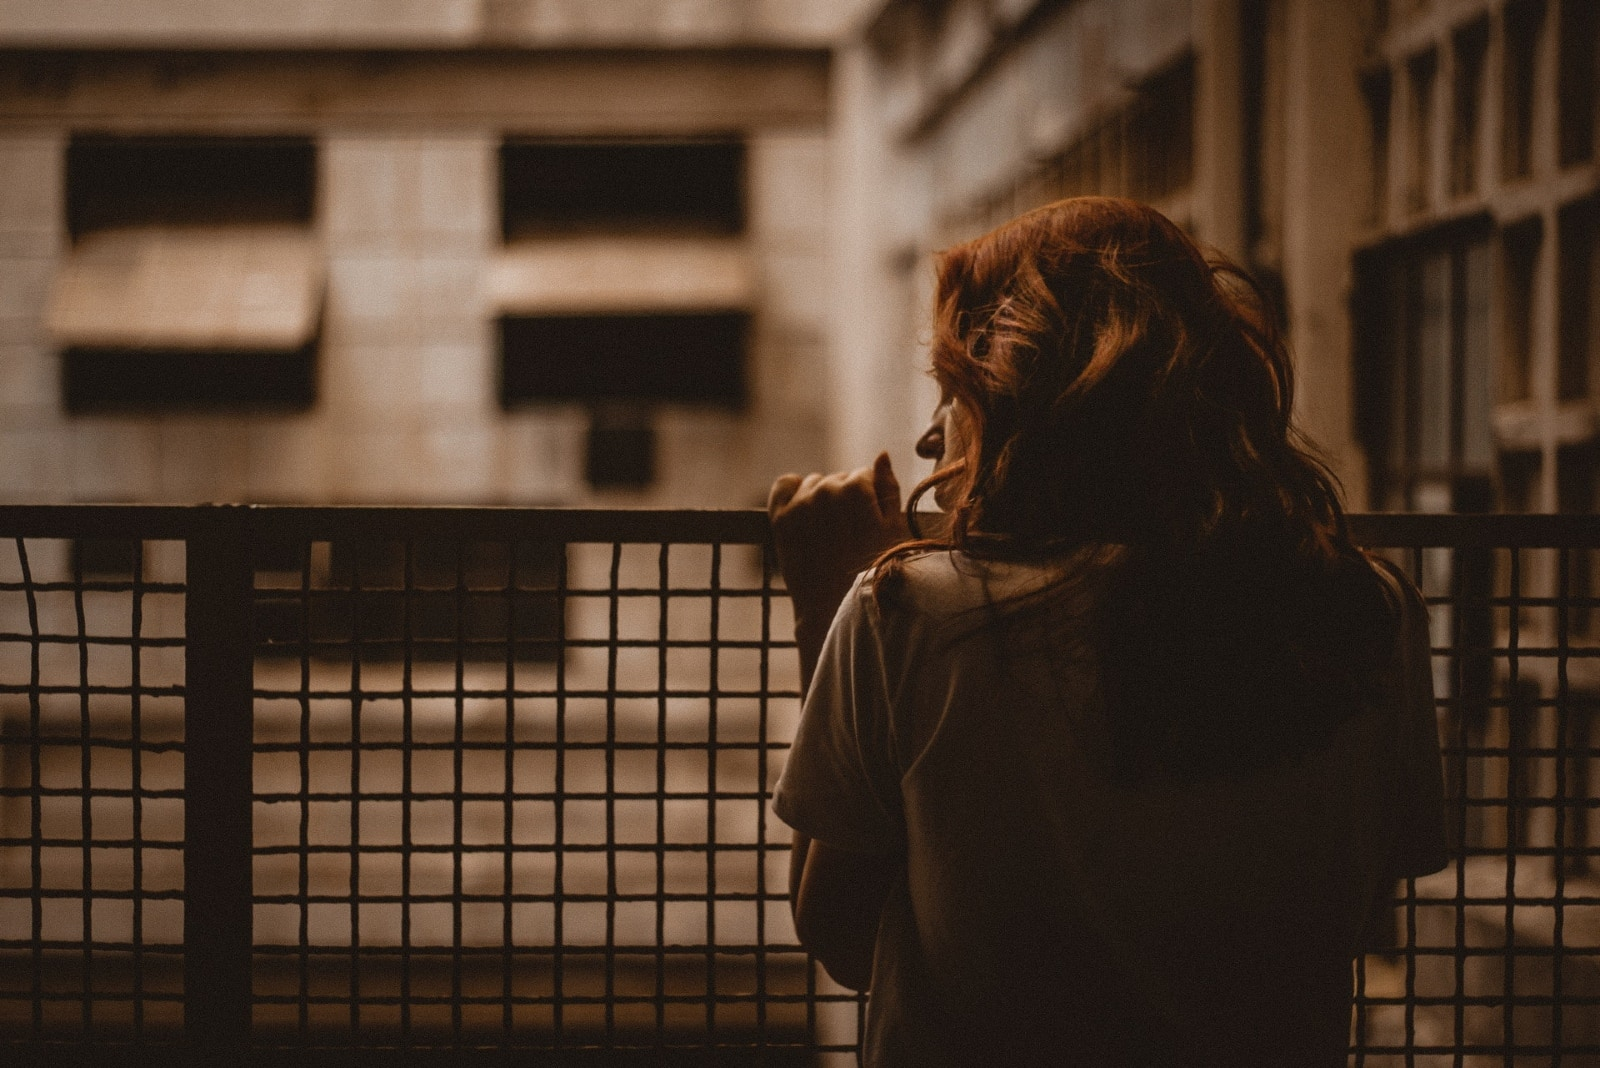 sad woman in gray t-shirt holding railings